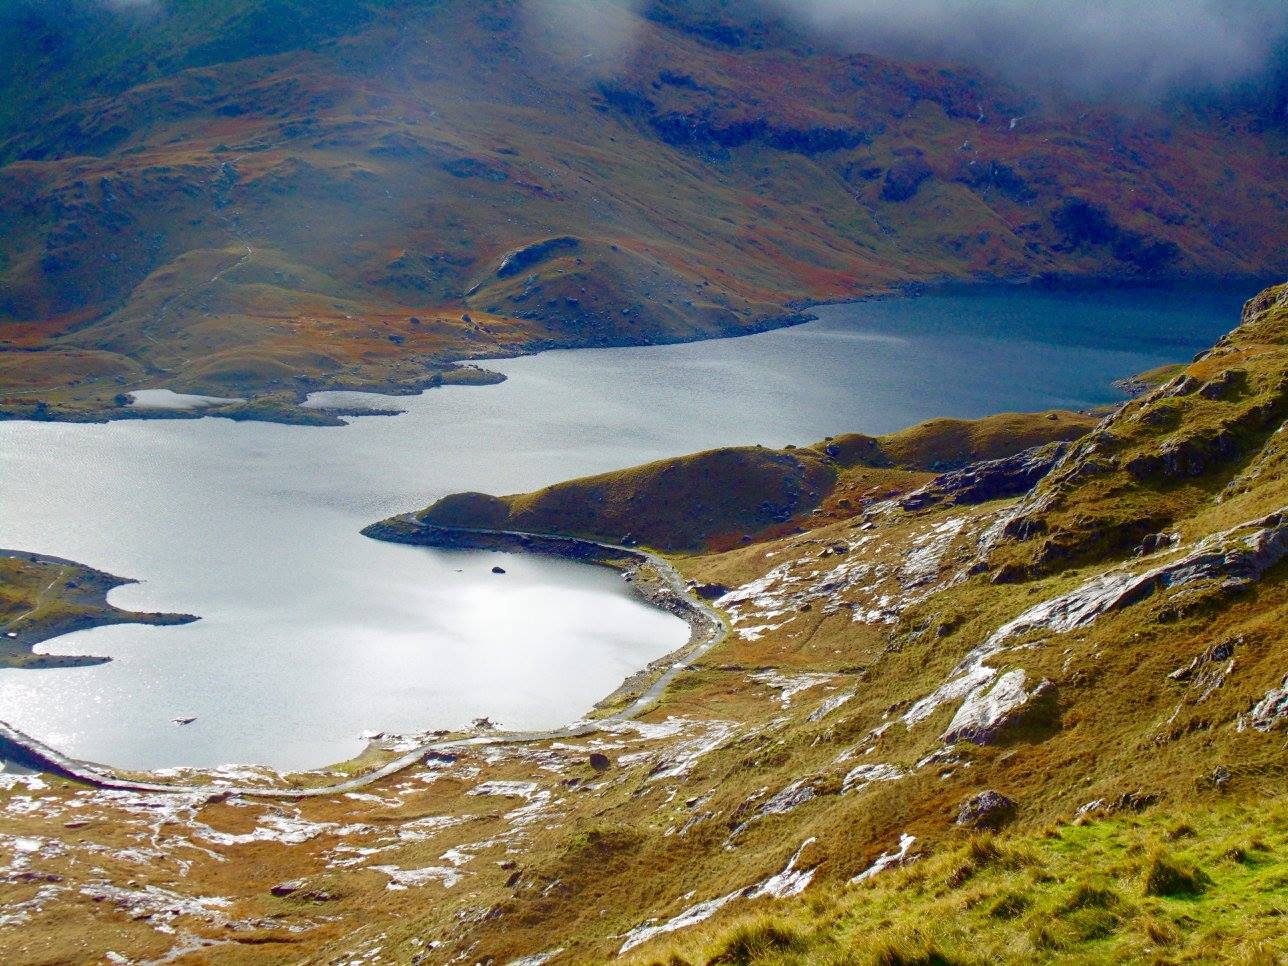 Llyn Llydaw, an incredible lake in Snowdon